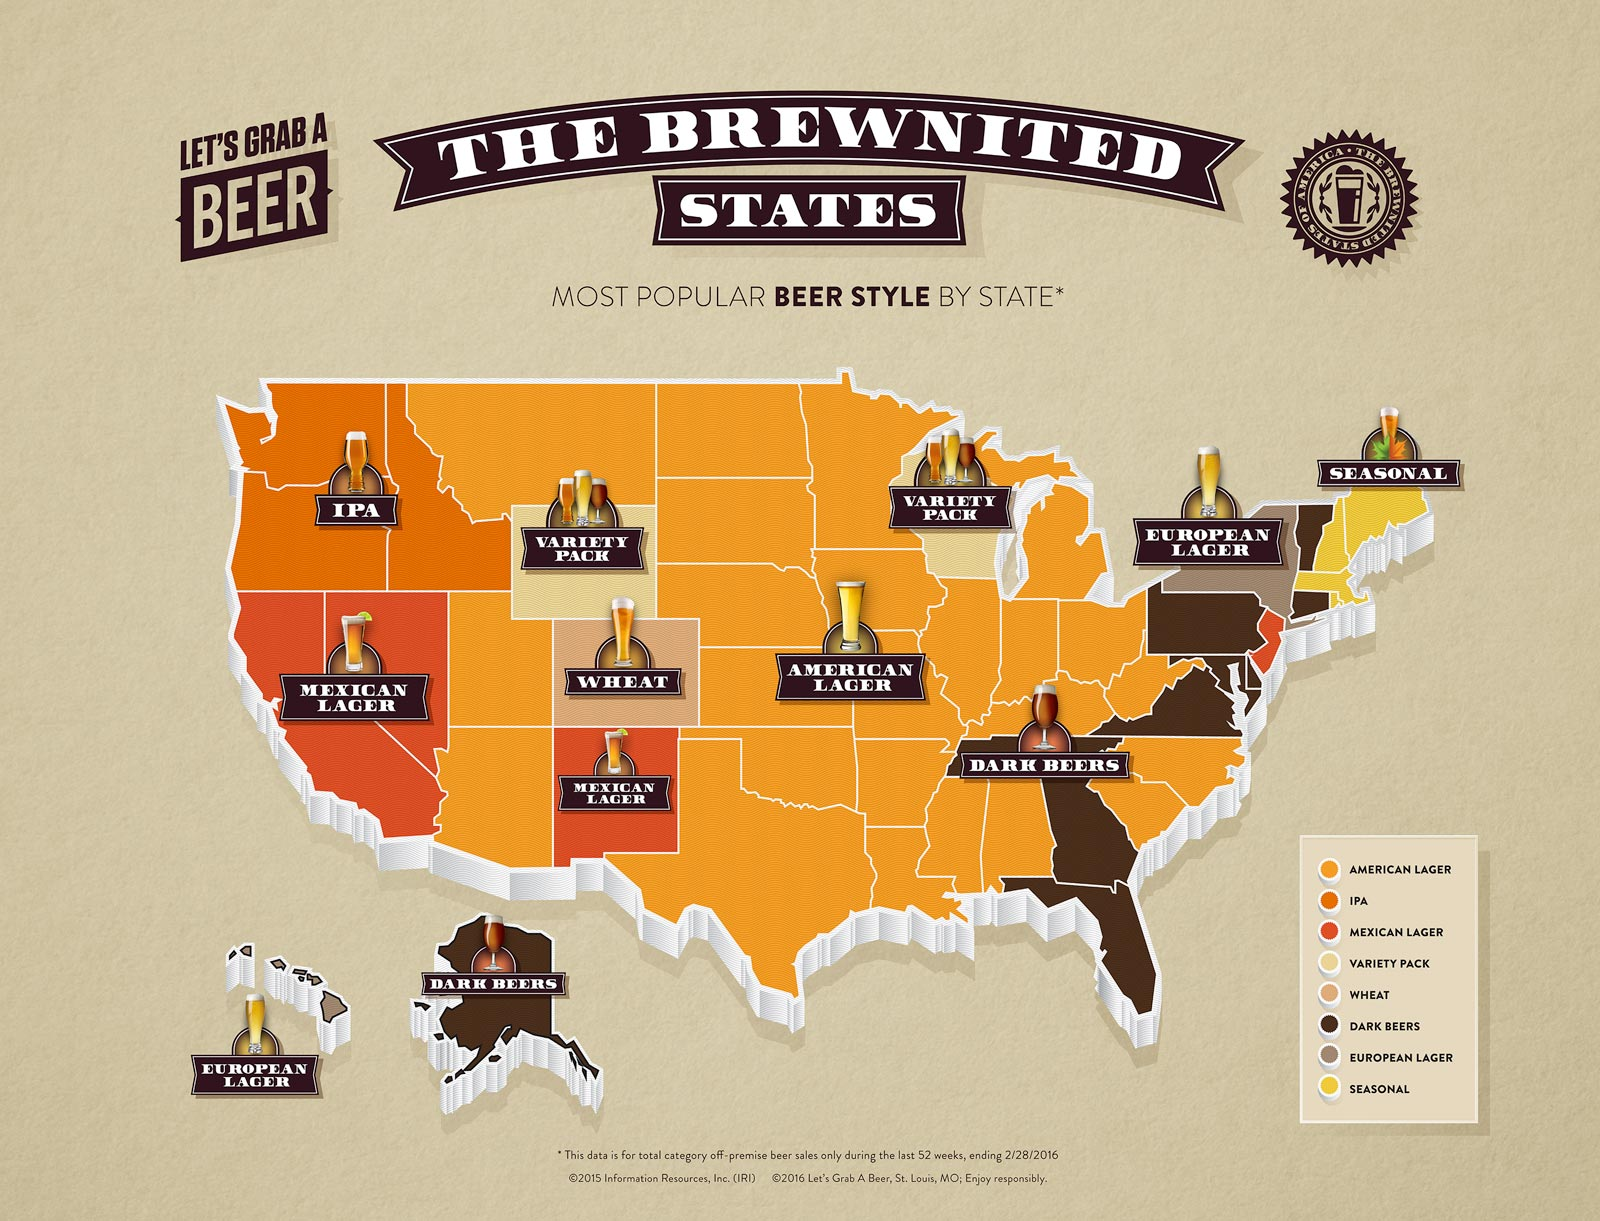 Study Shows America's Favorite Beer Style Still Lager